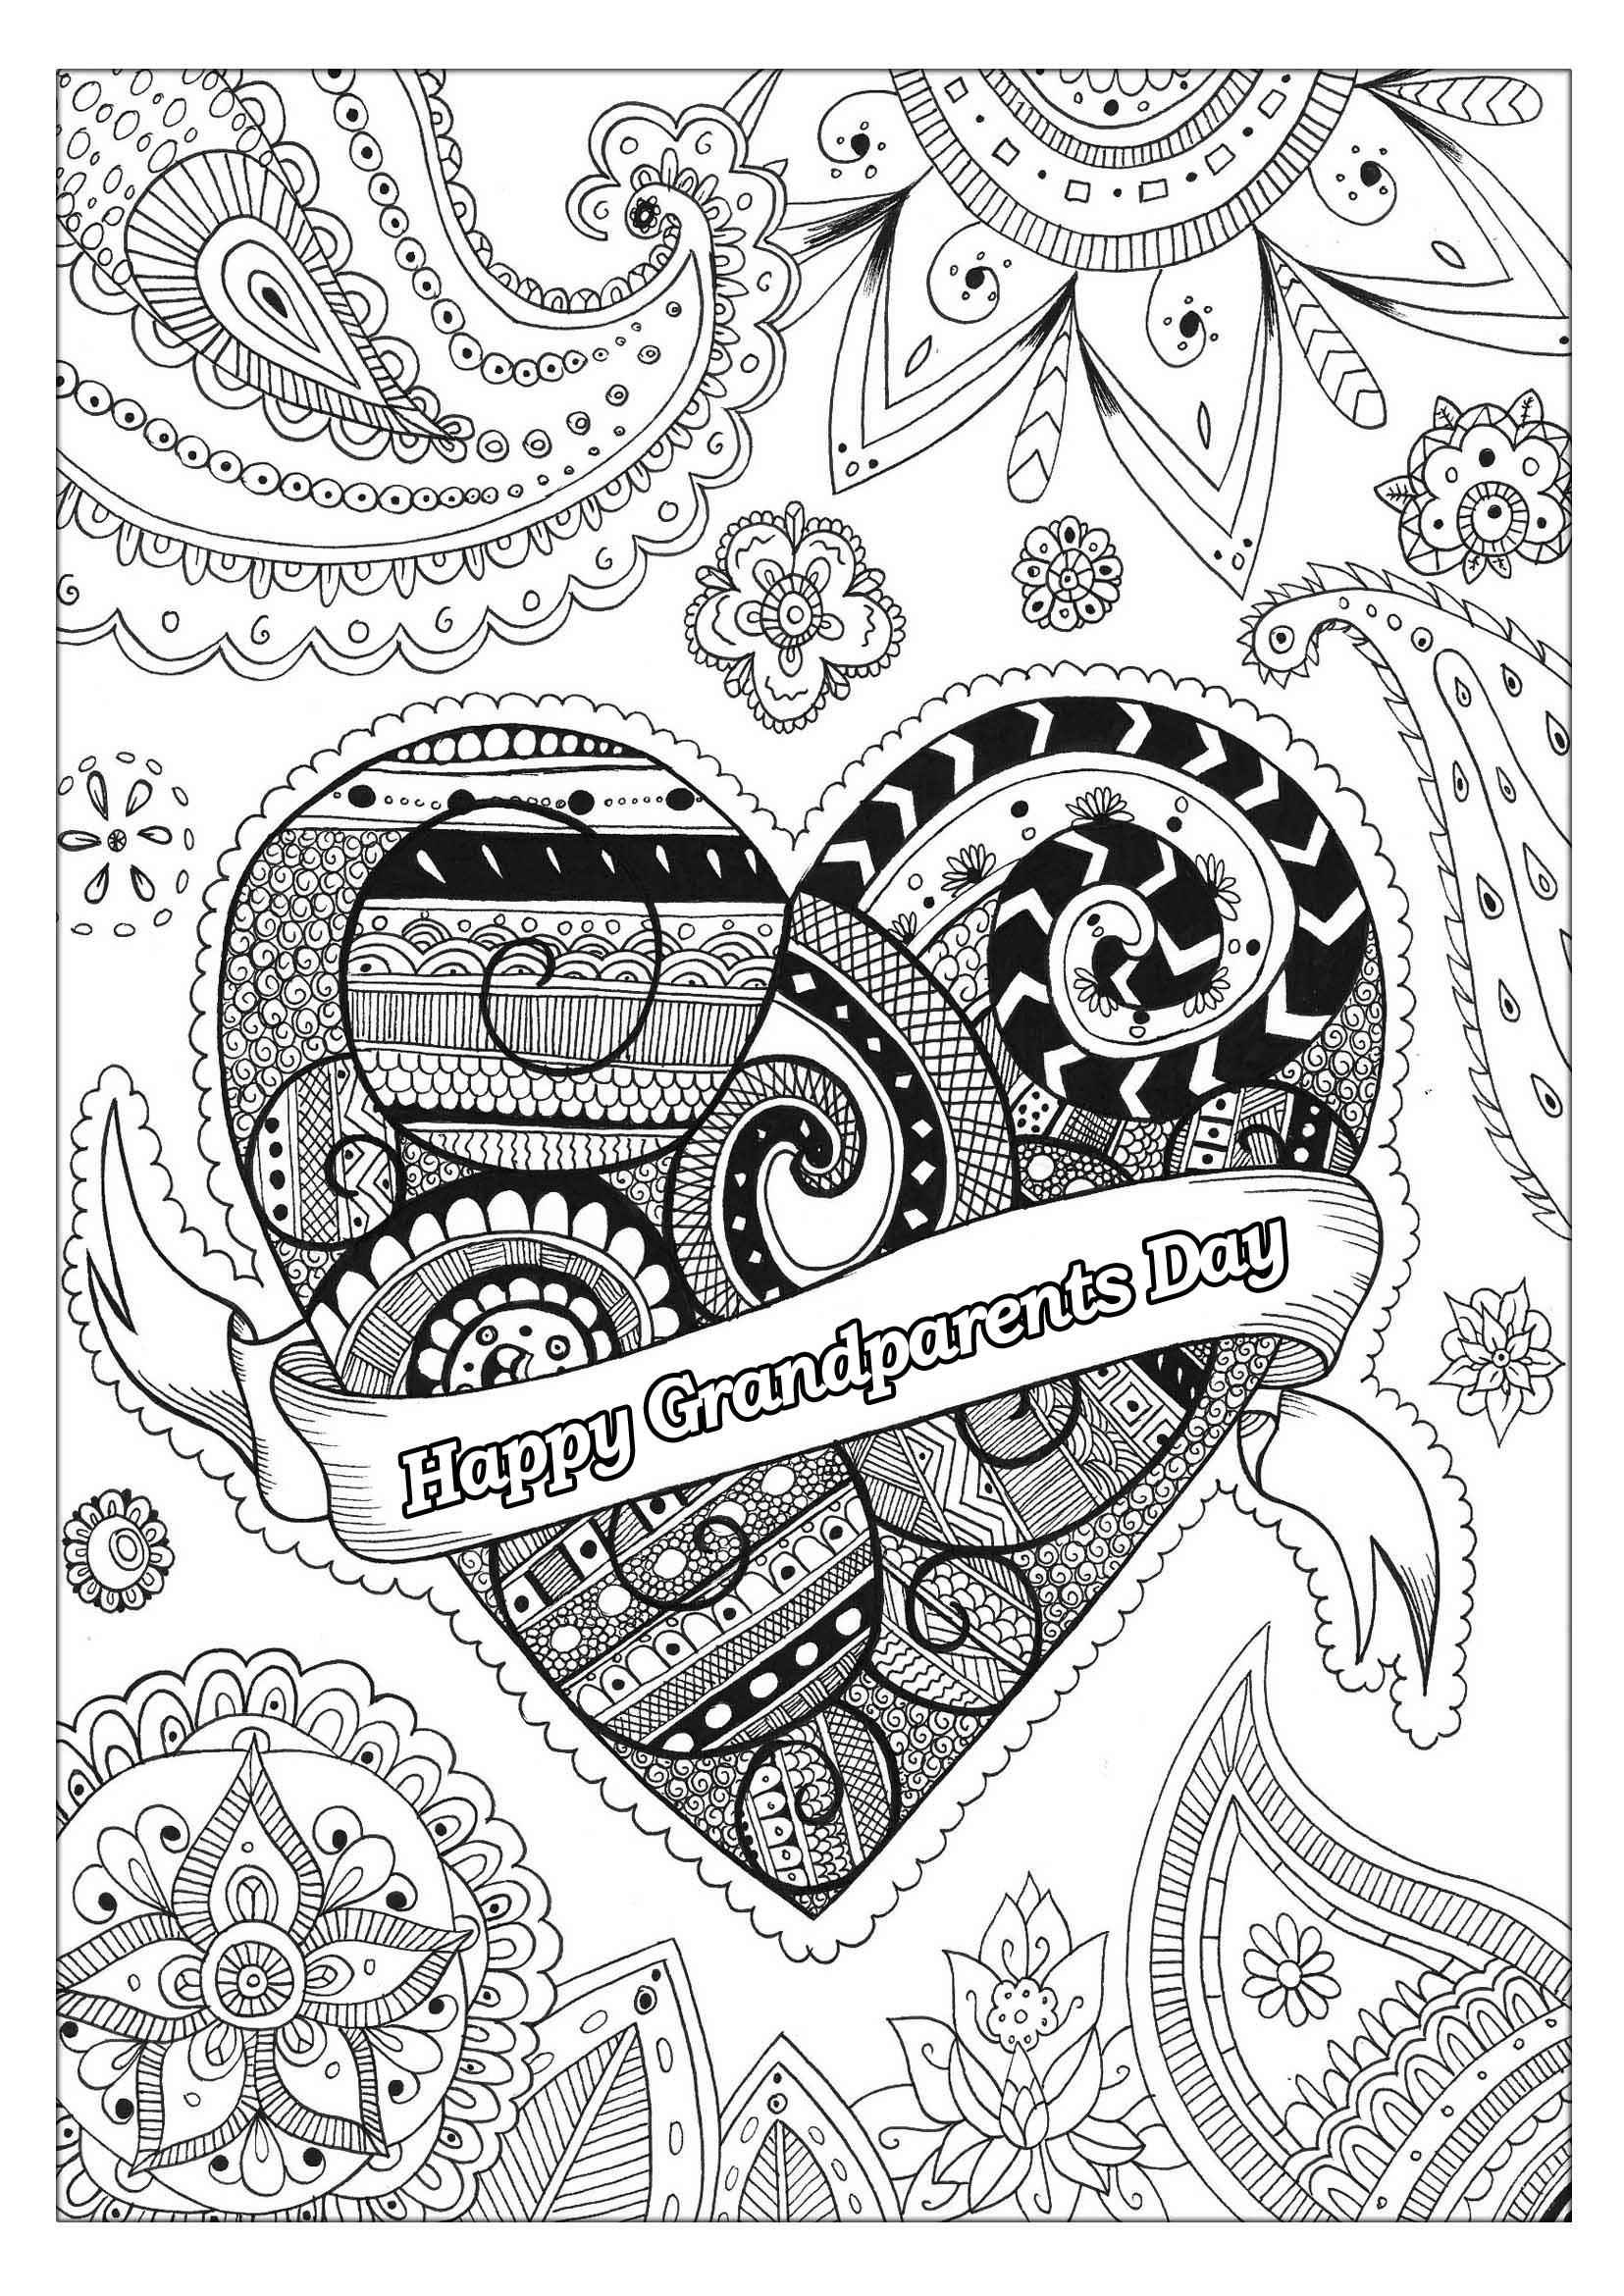 Grandparents day coloring page, with beautiful patterns